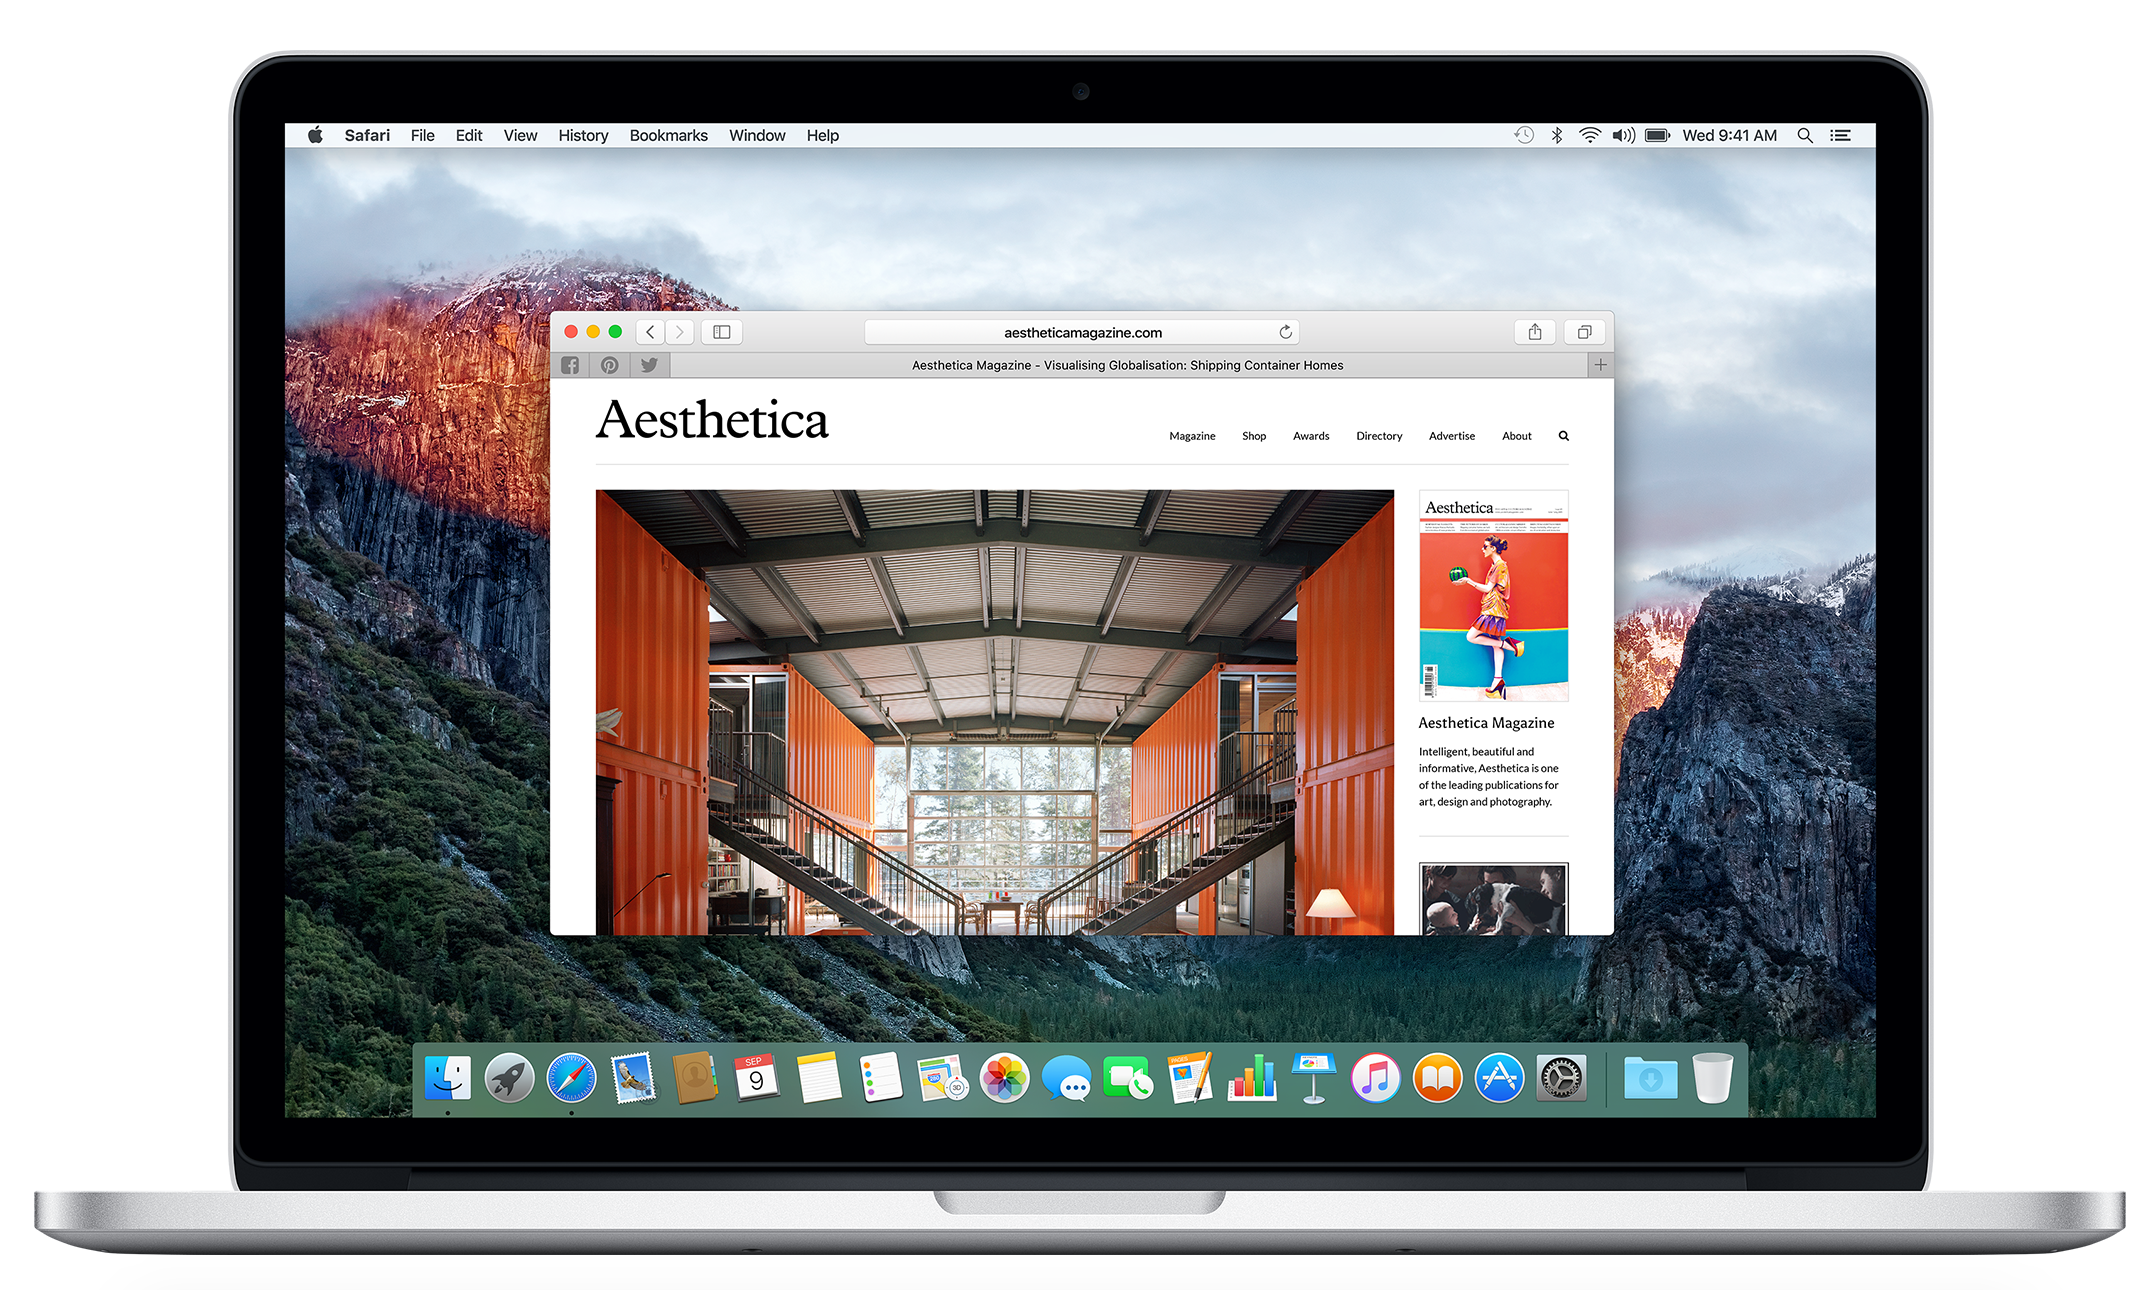 safari-web-browser-os-x-el-capitan